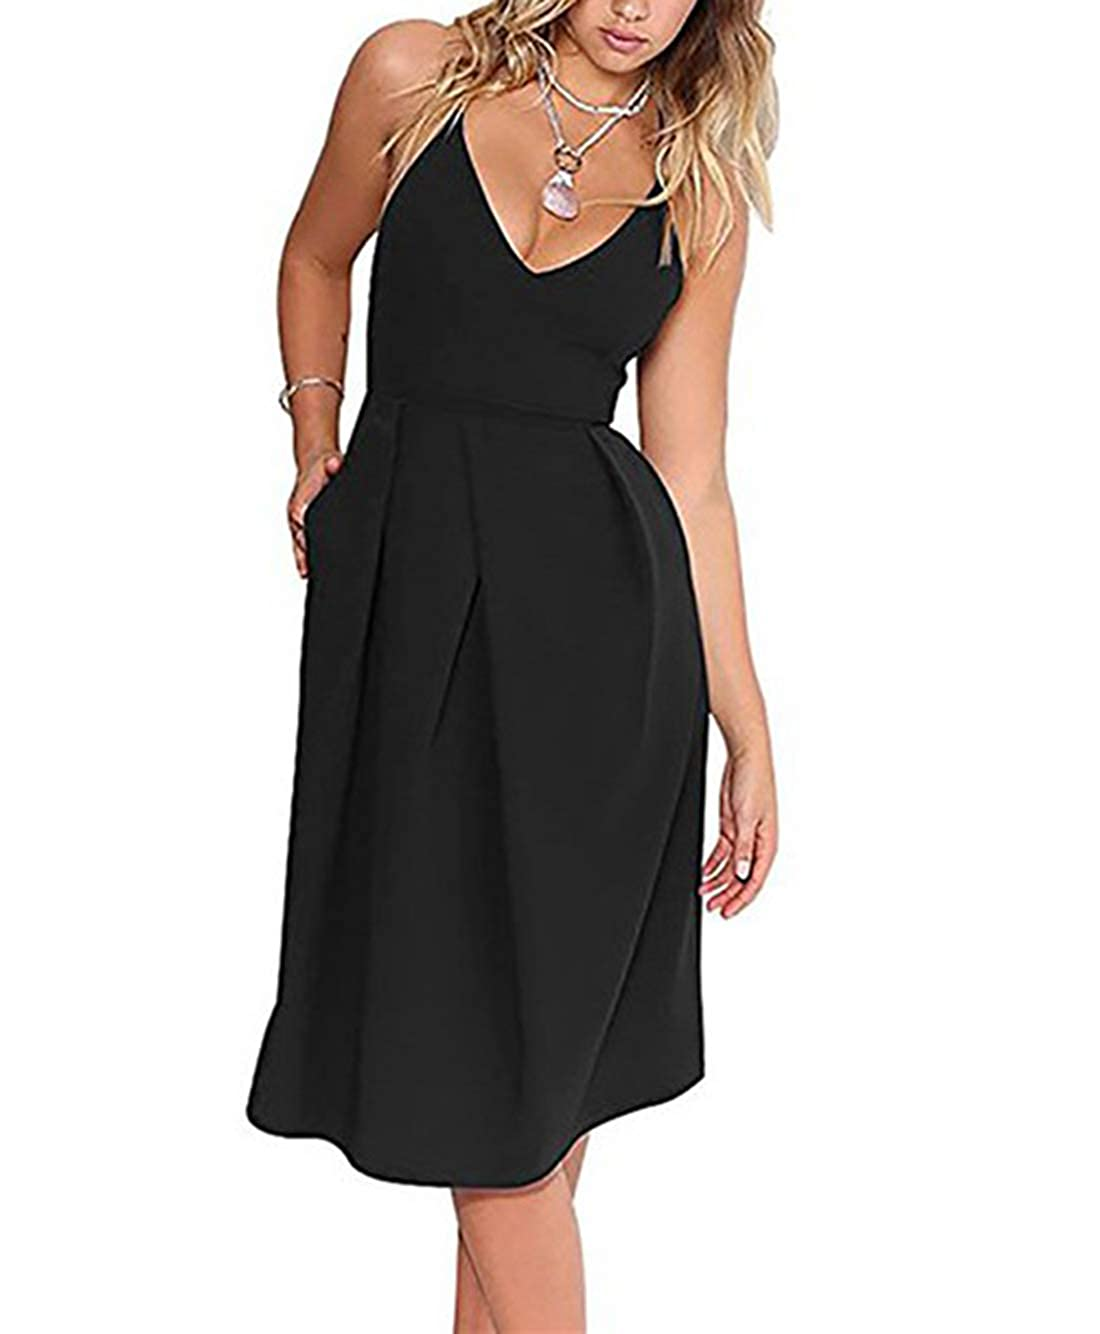 6ed5c469 Woemens Dresses: Cotton blend. Party dresses for women: Sleeveless Skater  Dress, Deep V Neck style, Sexy and Beautiful Zipper closure